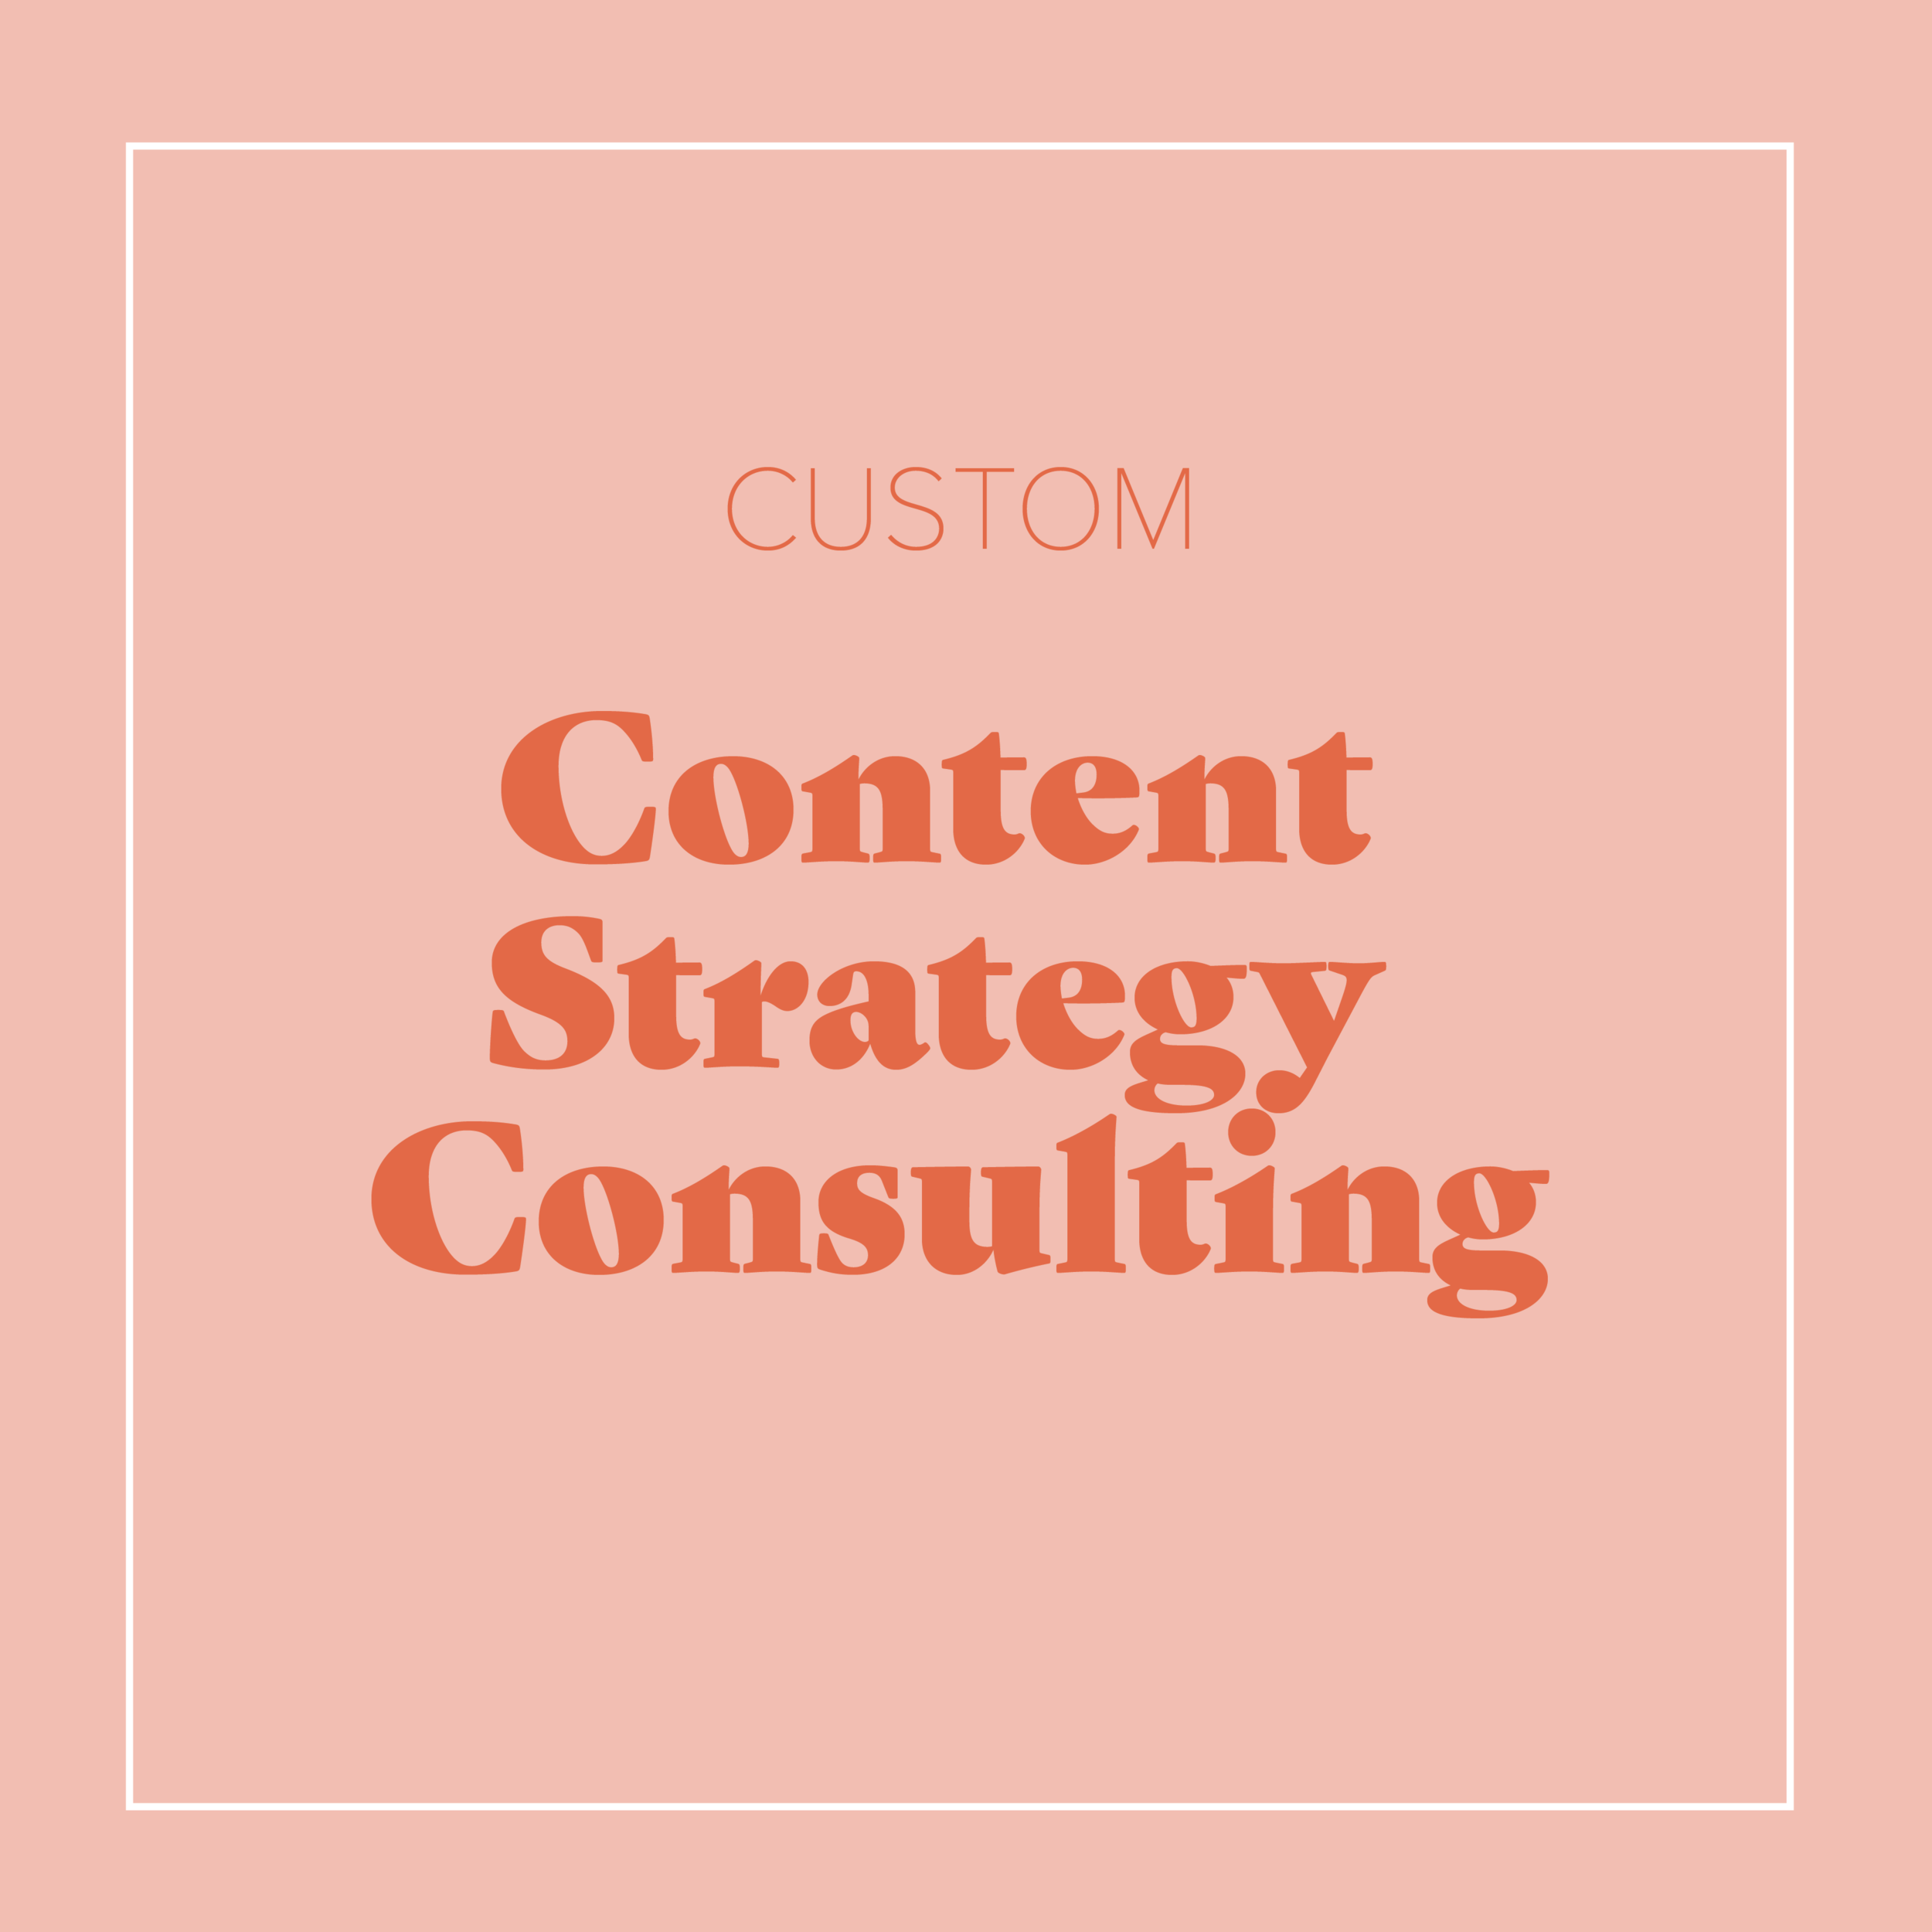 009_contentstrategy_stacyaguilar.png